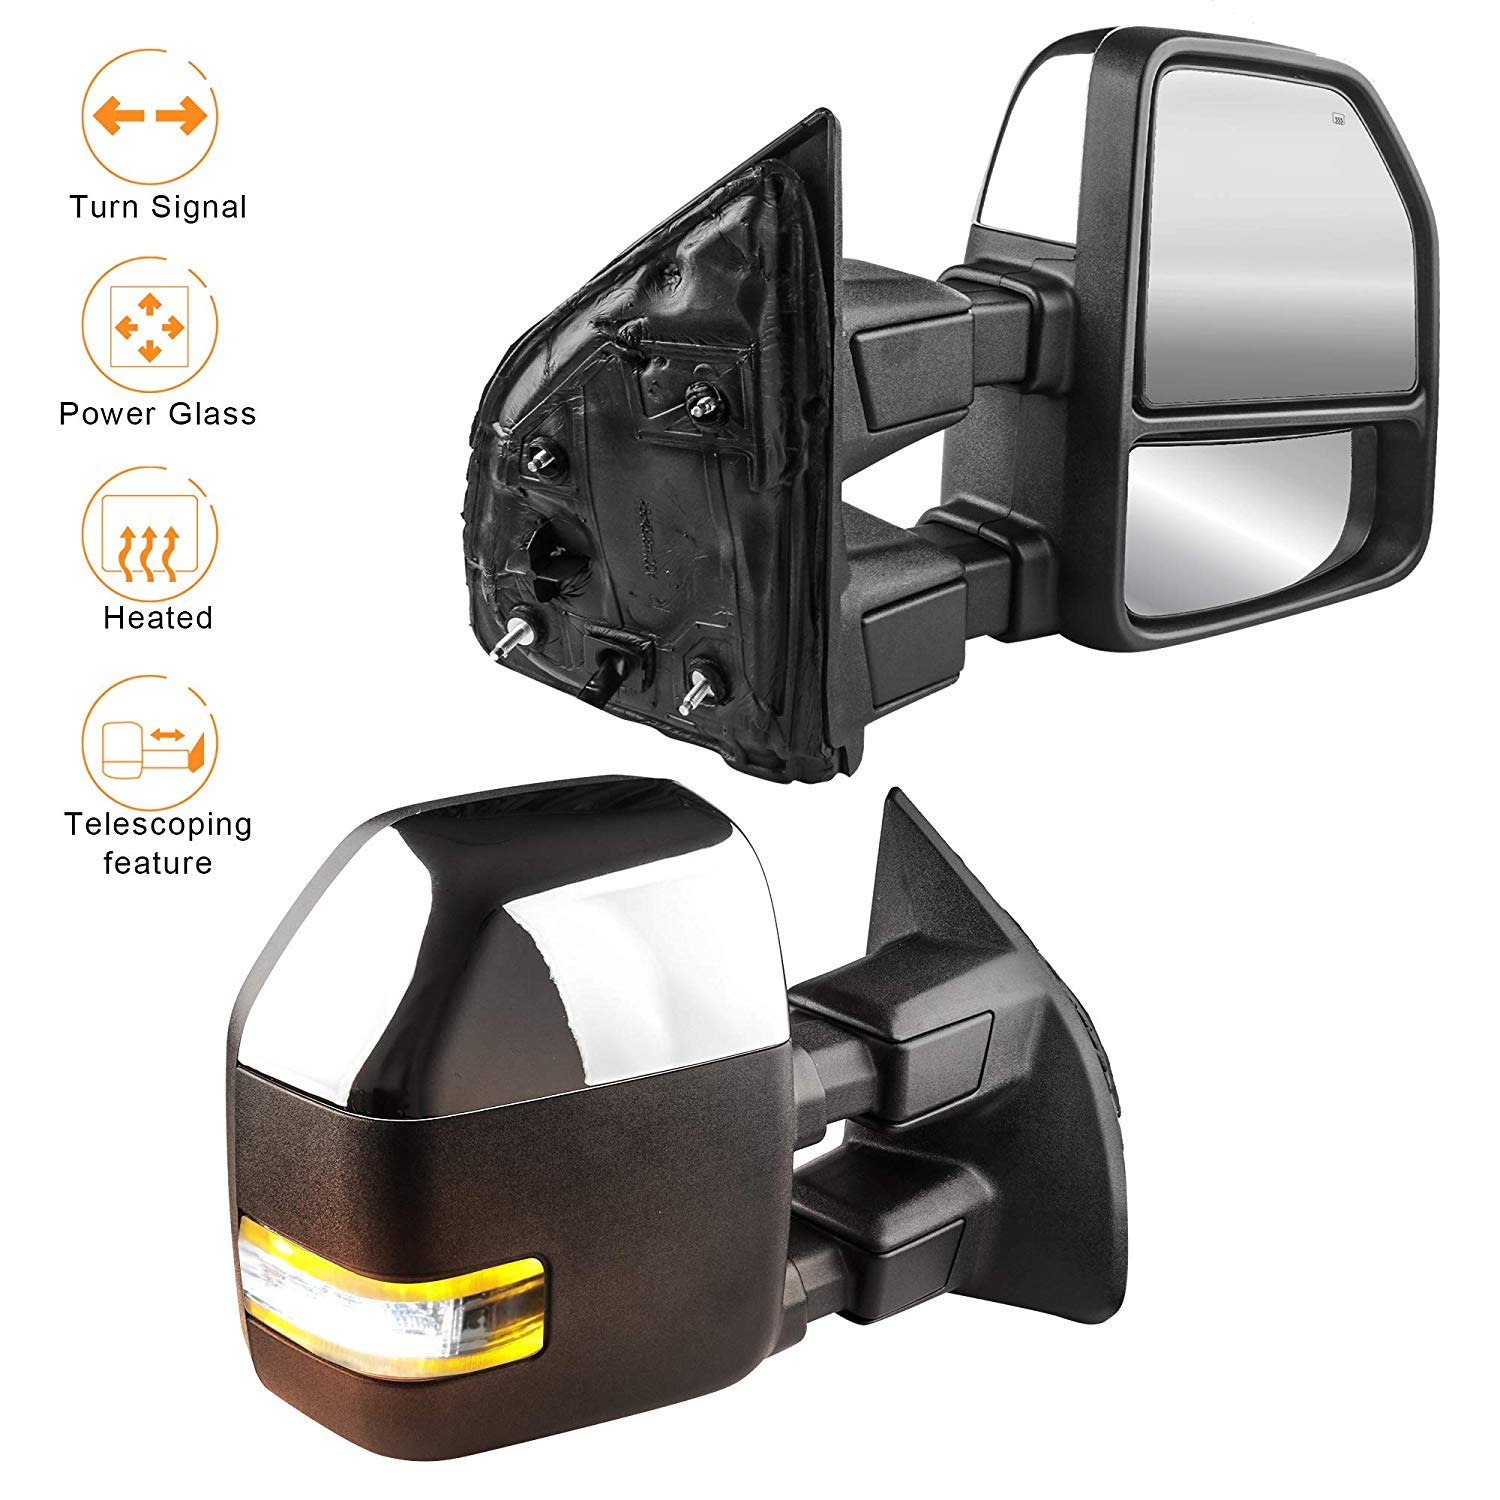 MOSTPLUS Chrome Housing Power Heated Towing Mirrors for Ford F250 F350 F450 F550 Super Duty Pickup Truck 2008-2016 w//Turn Signal Clearance Light Set